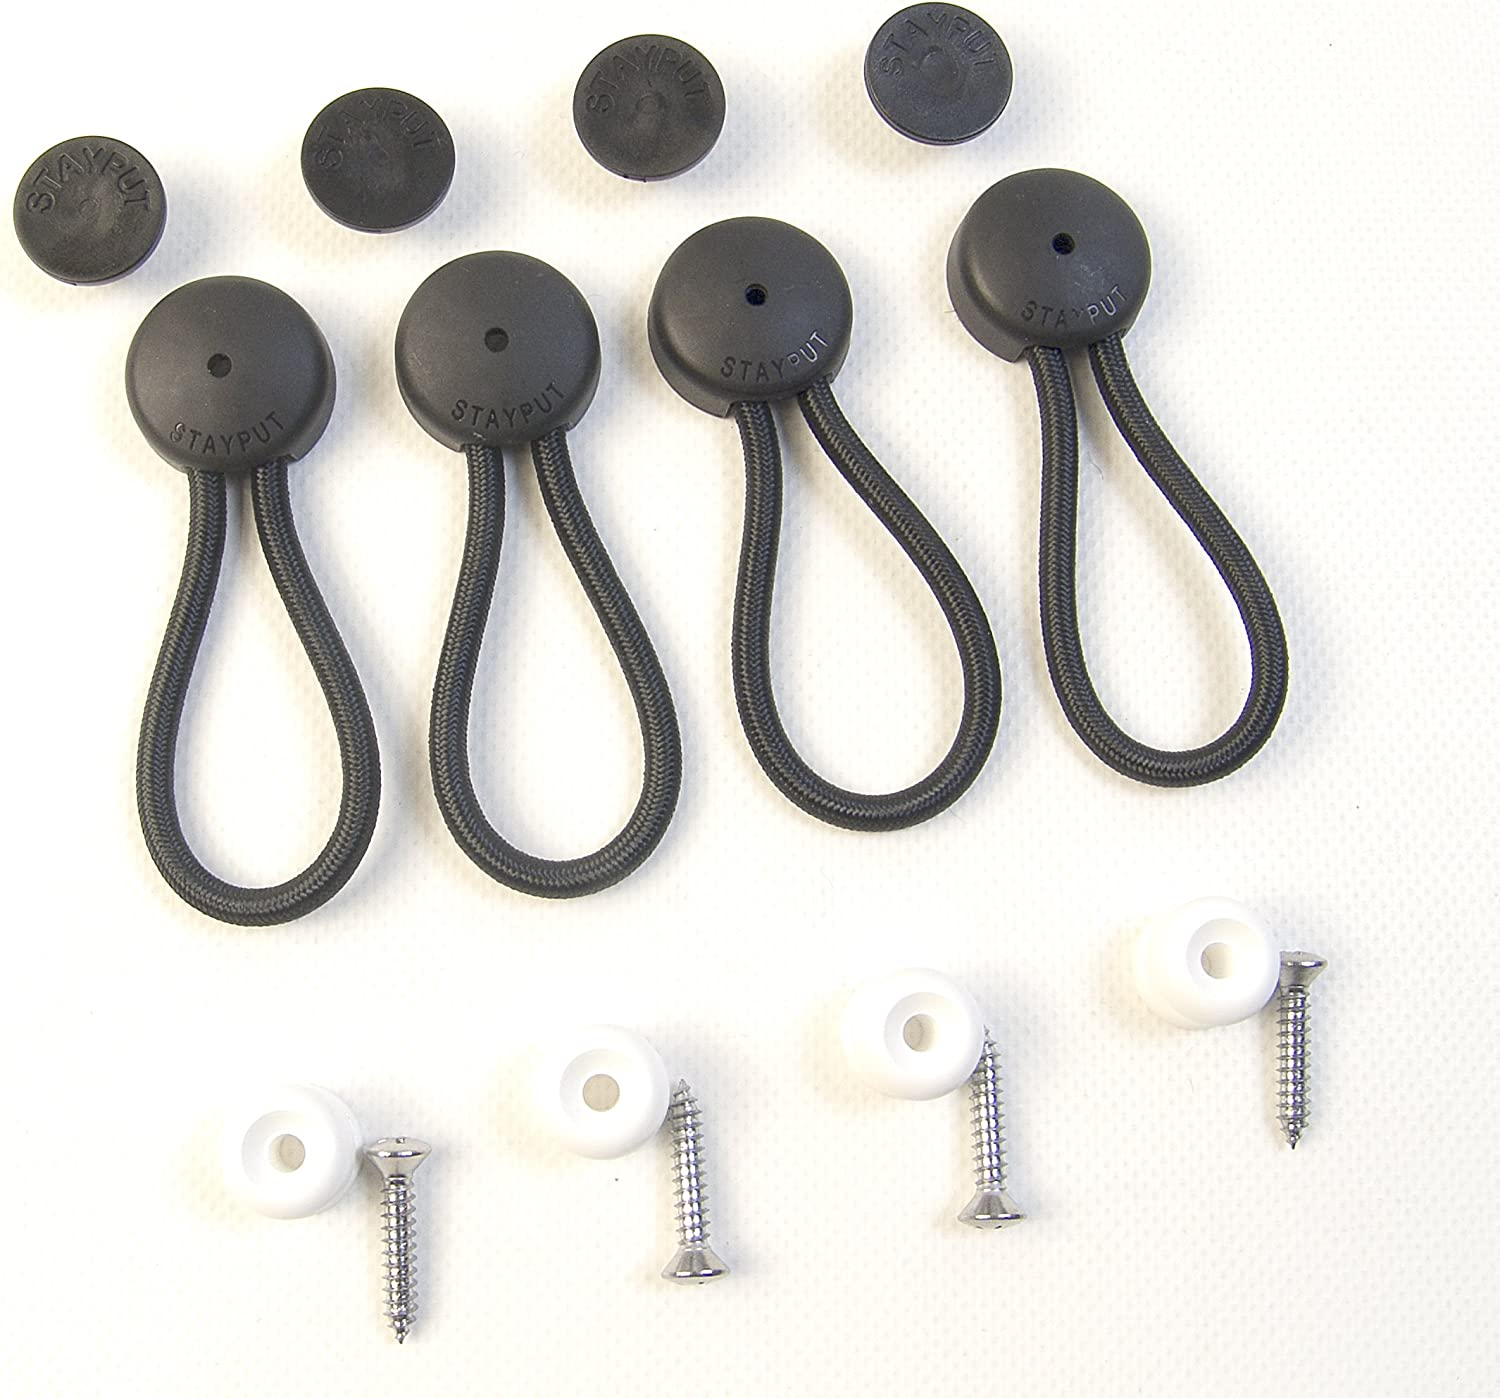 Stayput Bungee/Shock Cord Fastener's, Black with White Surface Attachment, 4 Pcs